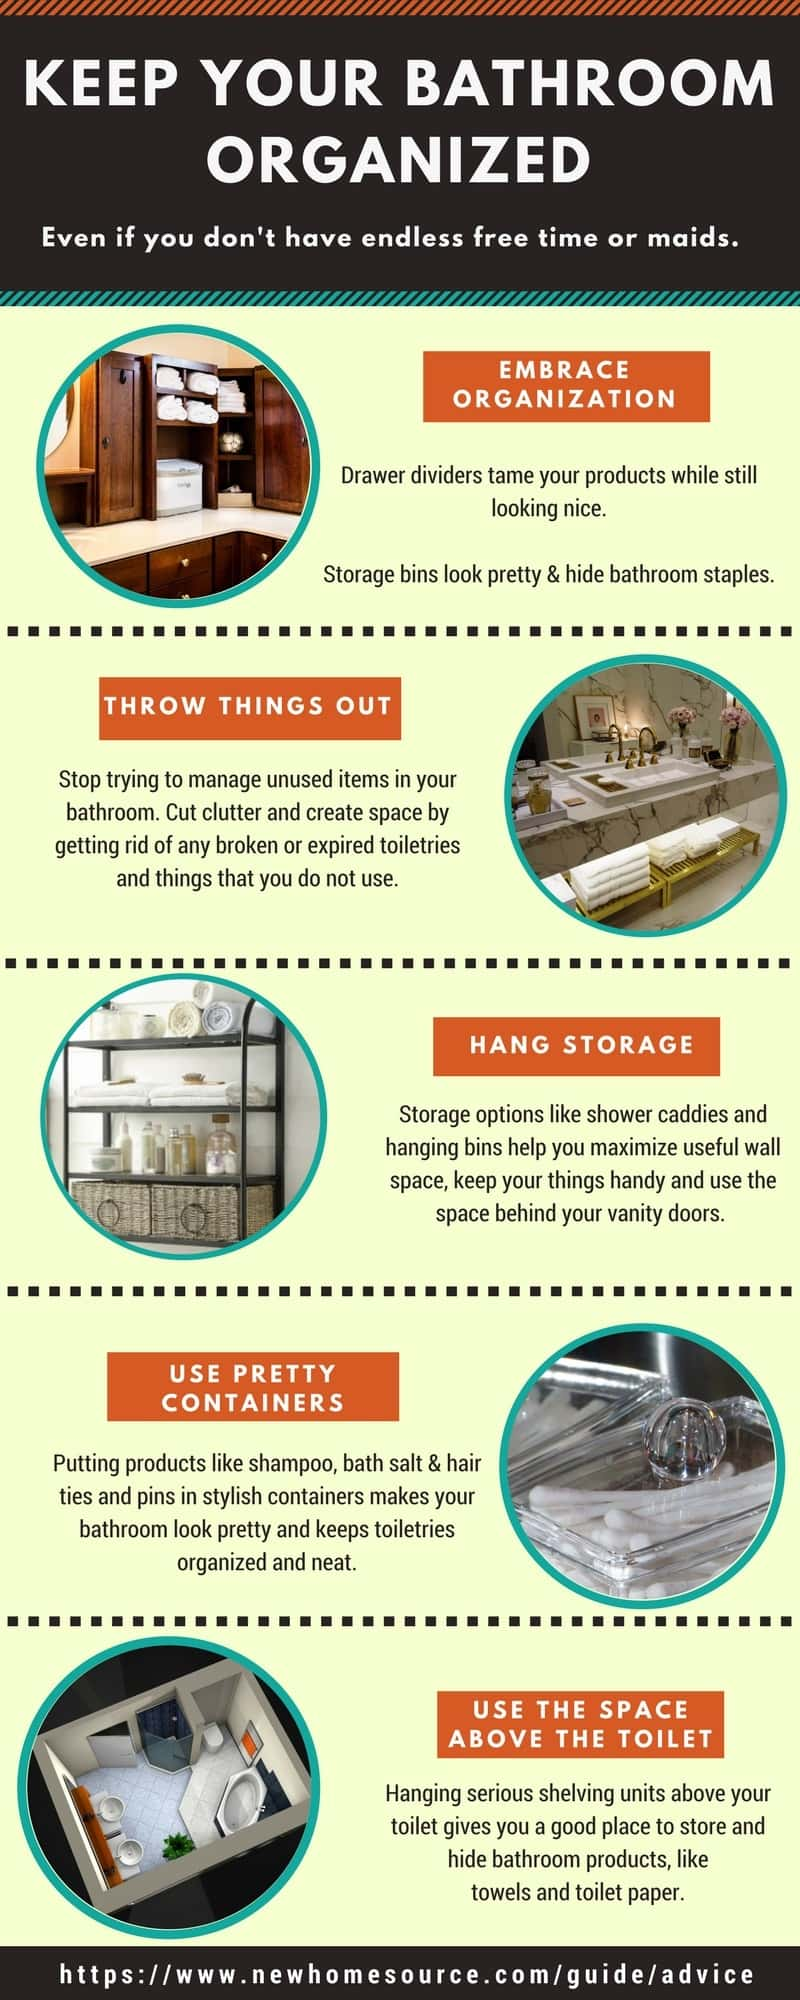 Infographic with tips on how to keep bathroom neat and organized.